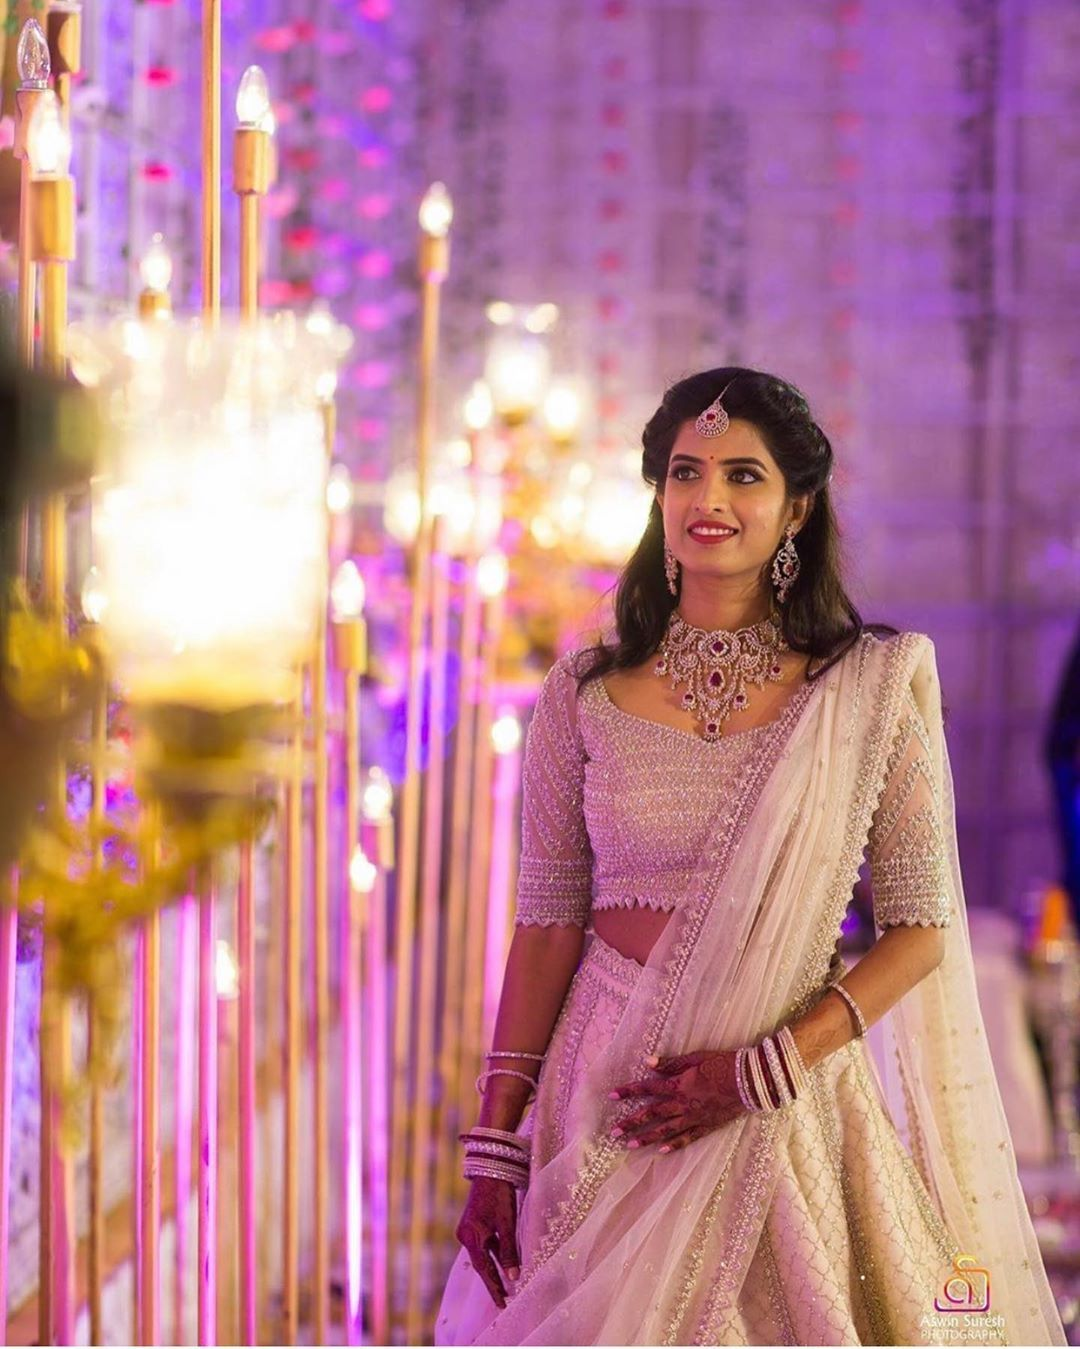 Hyderabad Bridal Inspiration On Instagram Gorgeous Bride Photo By Aswin Suresh Photography Bridesofh Desi Wedding Dresses Indian Wedding Outfits Bride